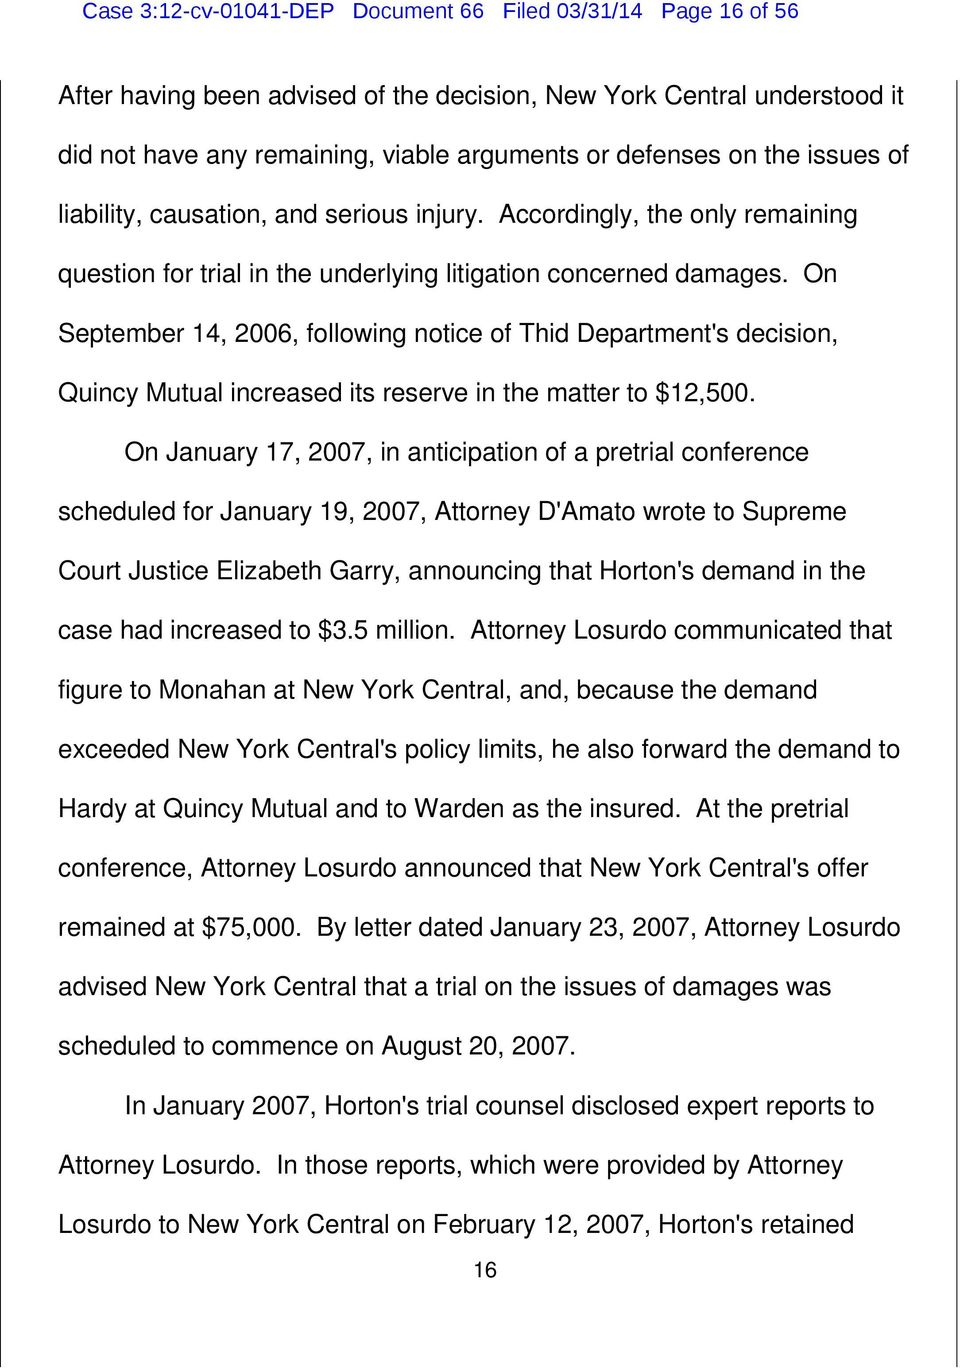 On September 14, 2006, following notice of Thid Department's decision, Quincy Mutual increased its reserve in the matter to $12,500.